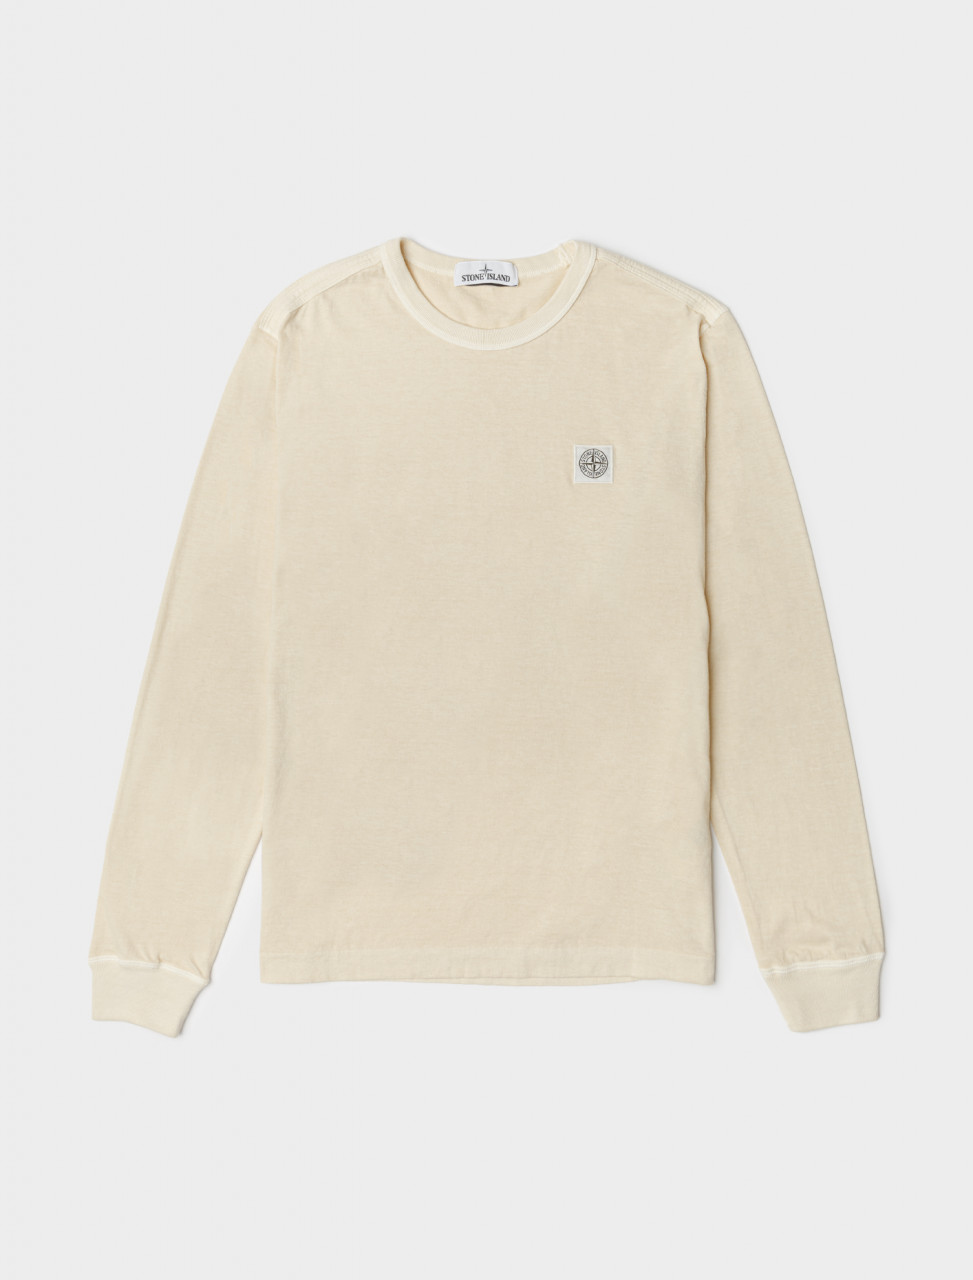 Fissato Dyed Long Sleeve T-Shirt in Beige